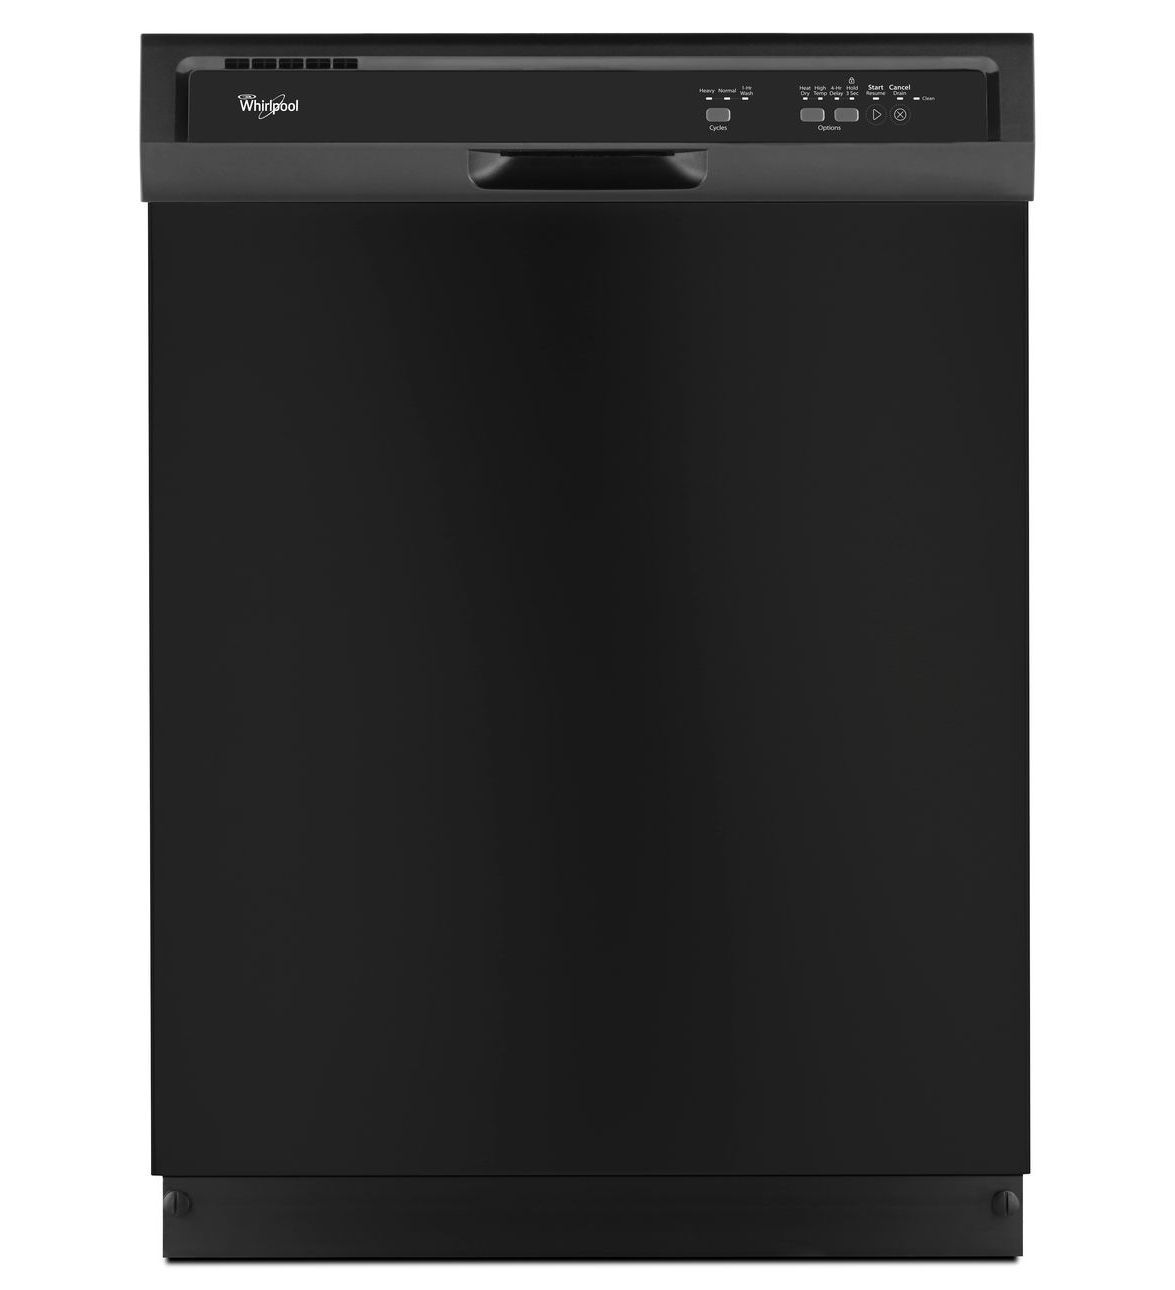 Energy star certified dishwasher with a soil sensor